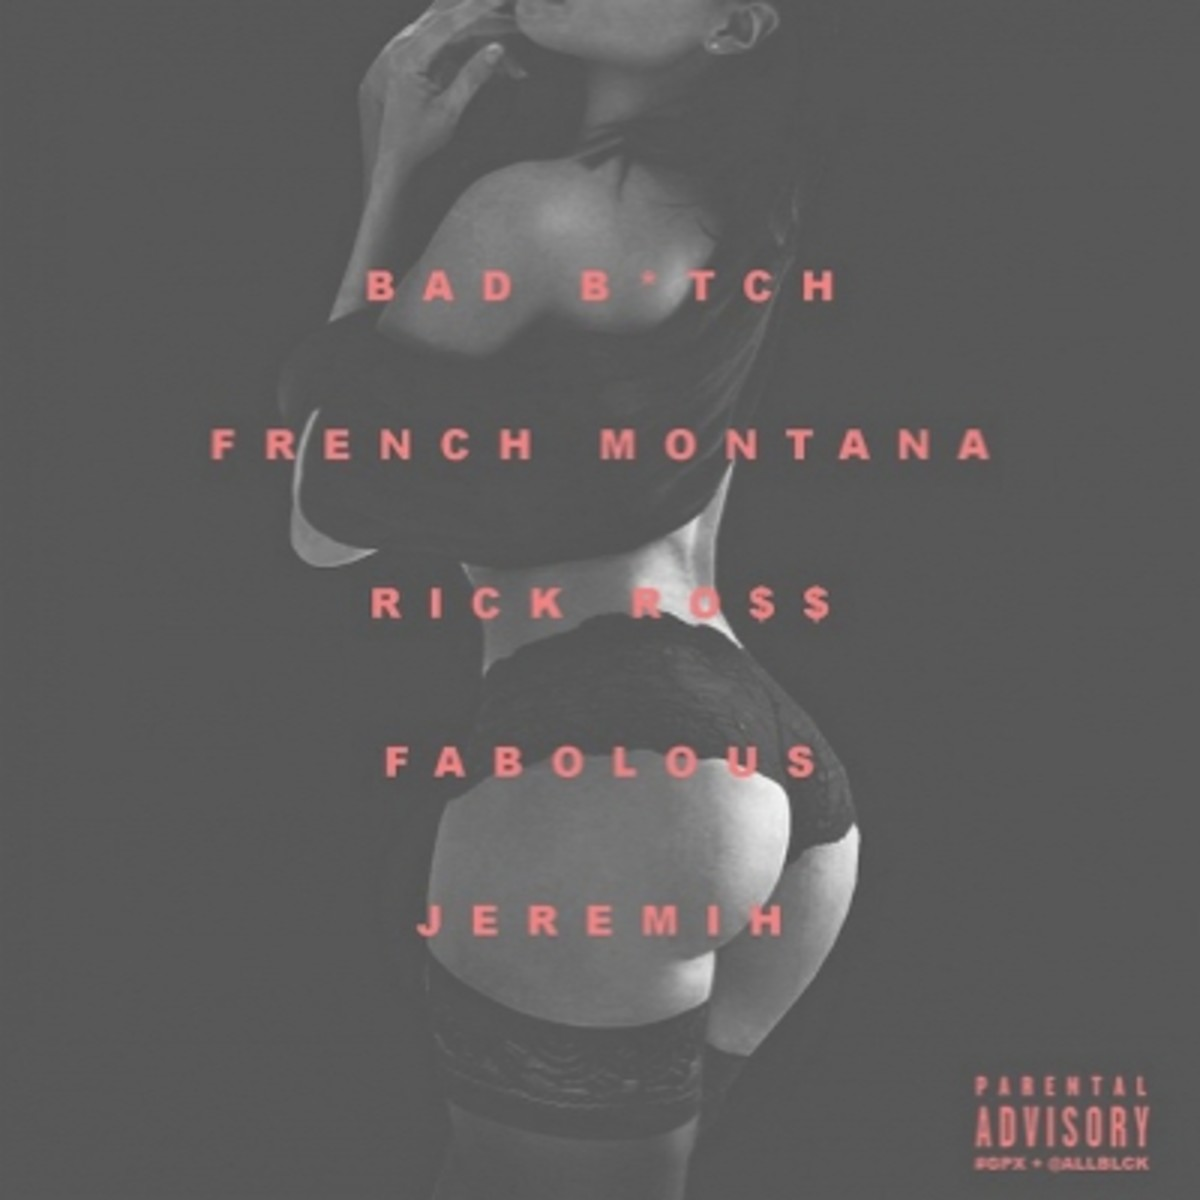 french-montana-bad-bitch-remix.jpg